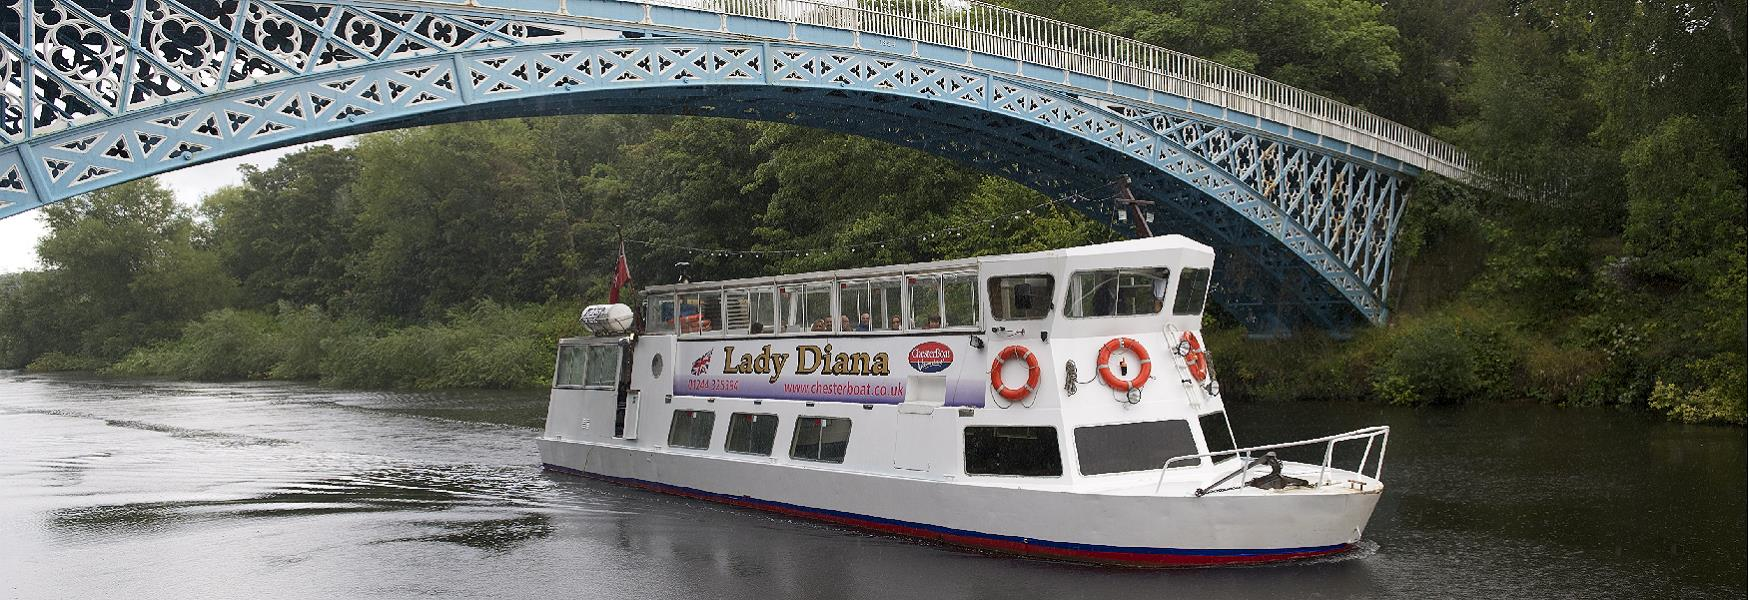 ChesterBoat - Sightseeing River Cruises